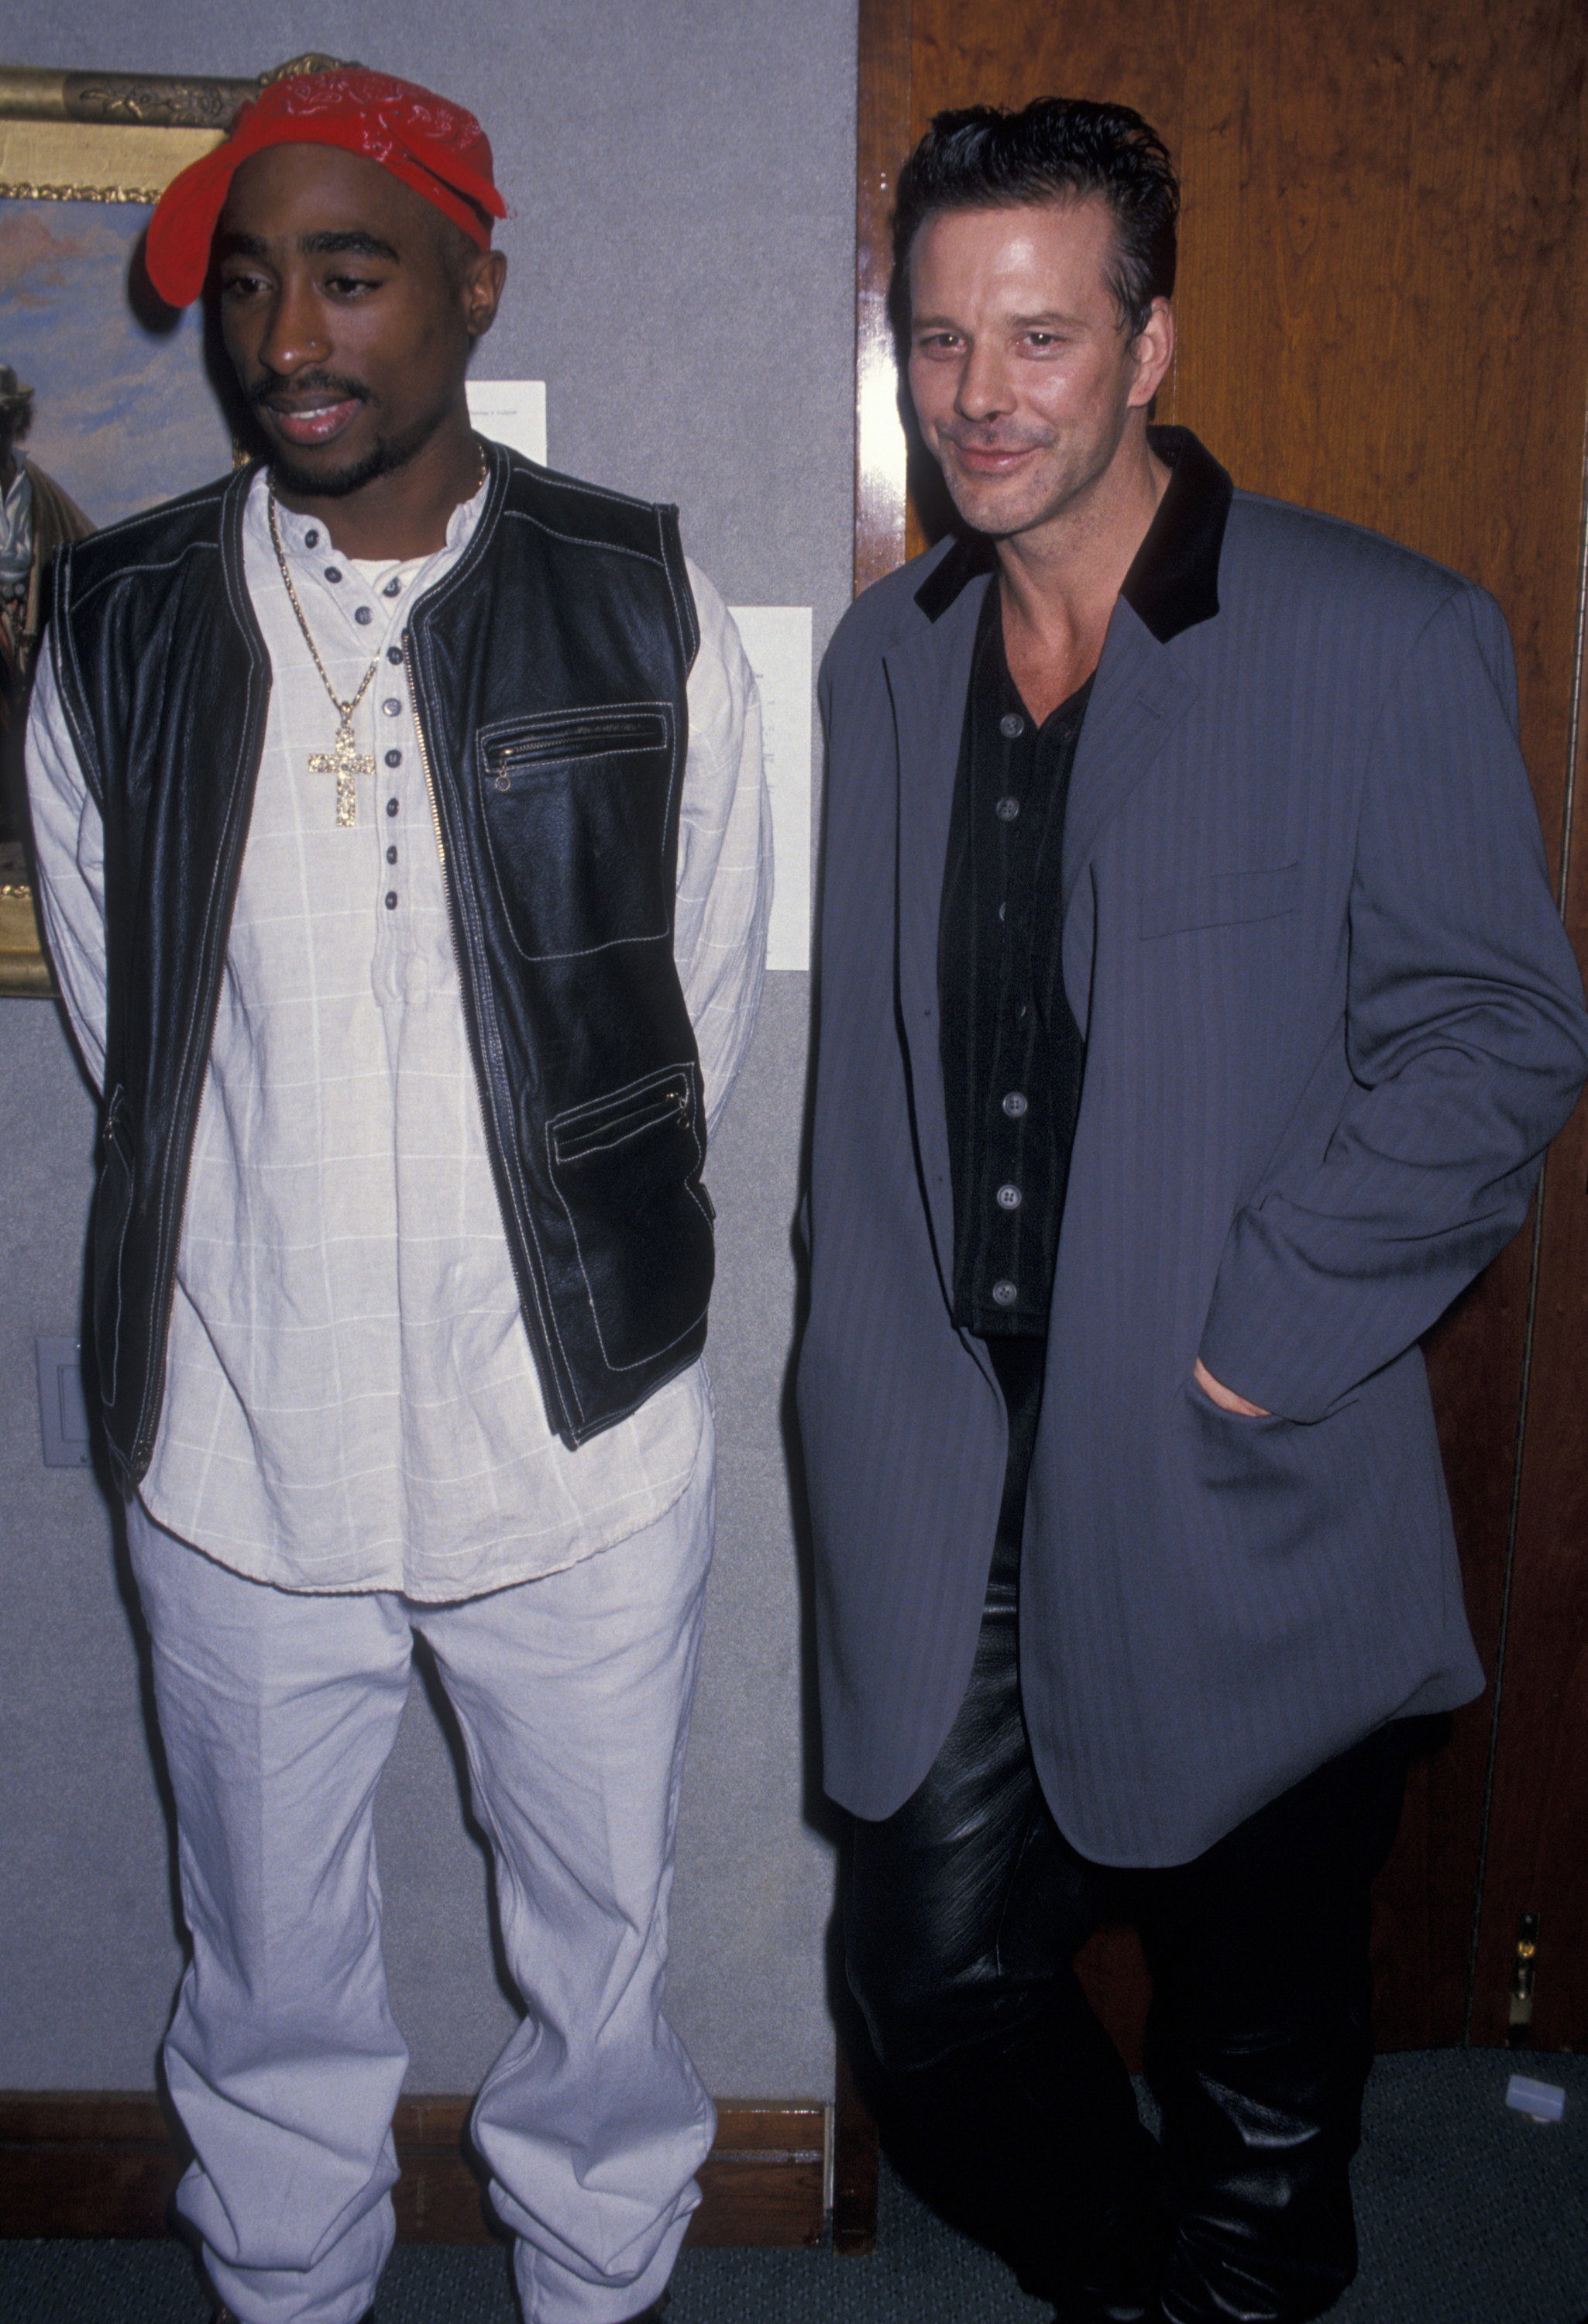 Actor Mickey Rourke and rapper Tupac Shakur attending